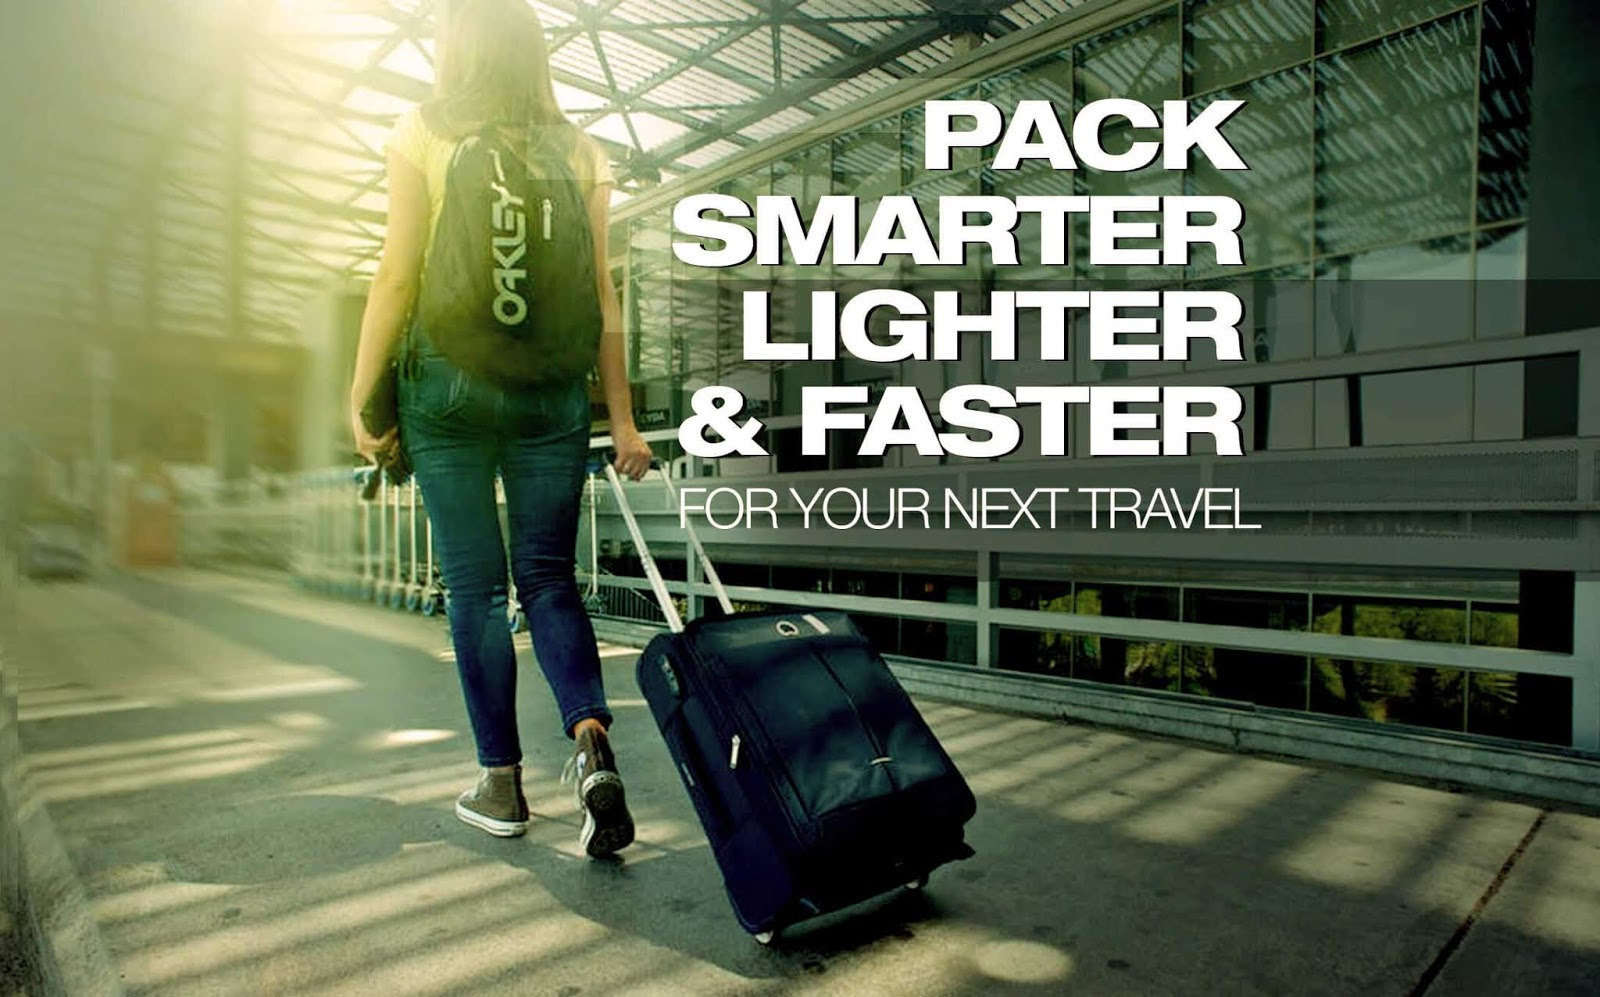 How to pack smarter lighter and faster